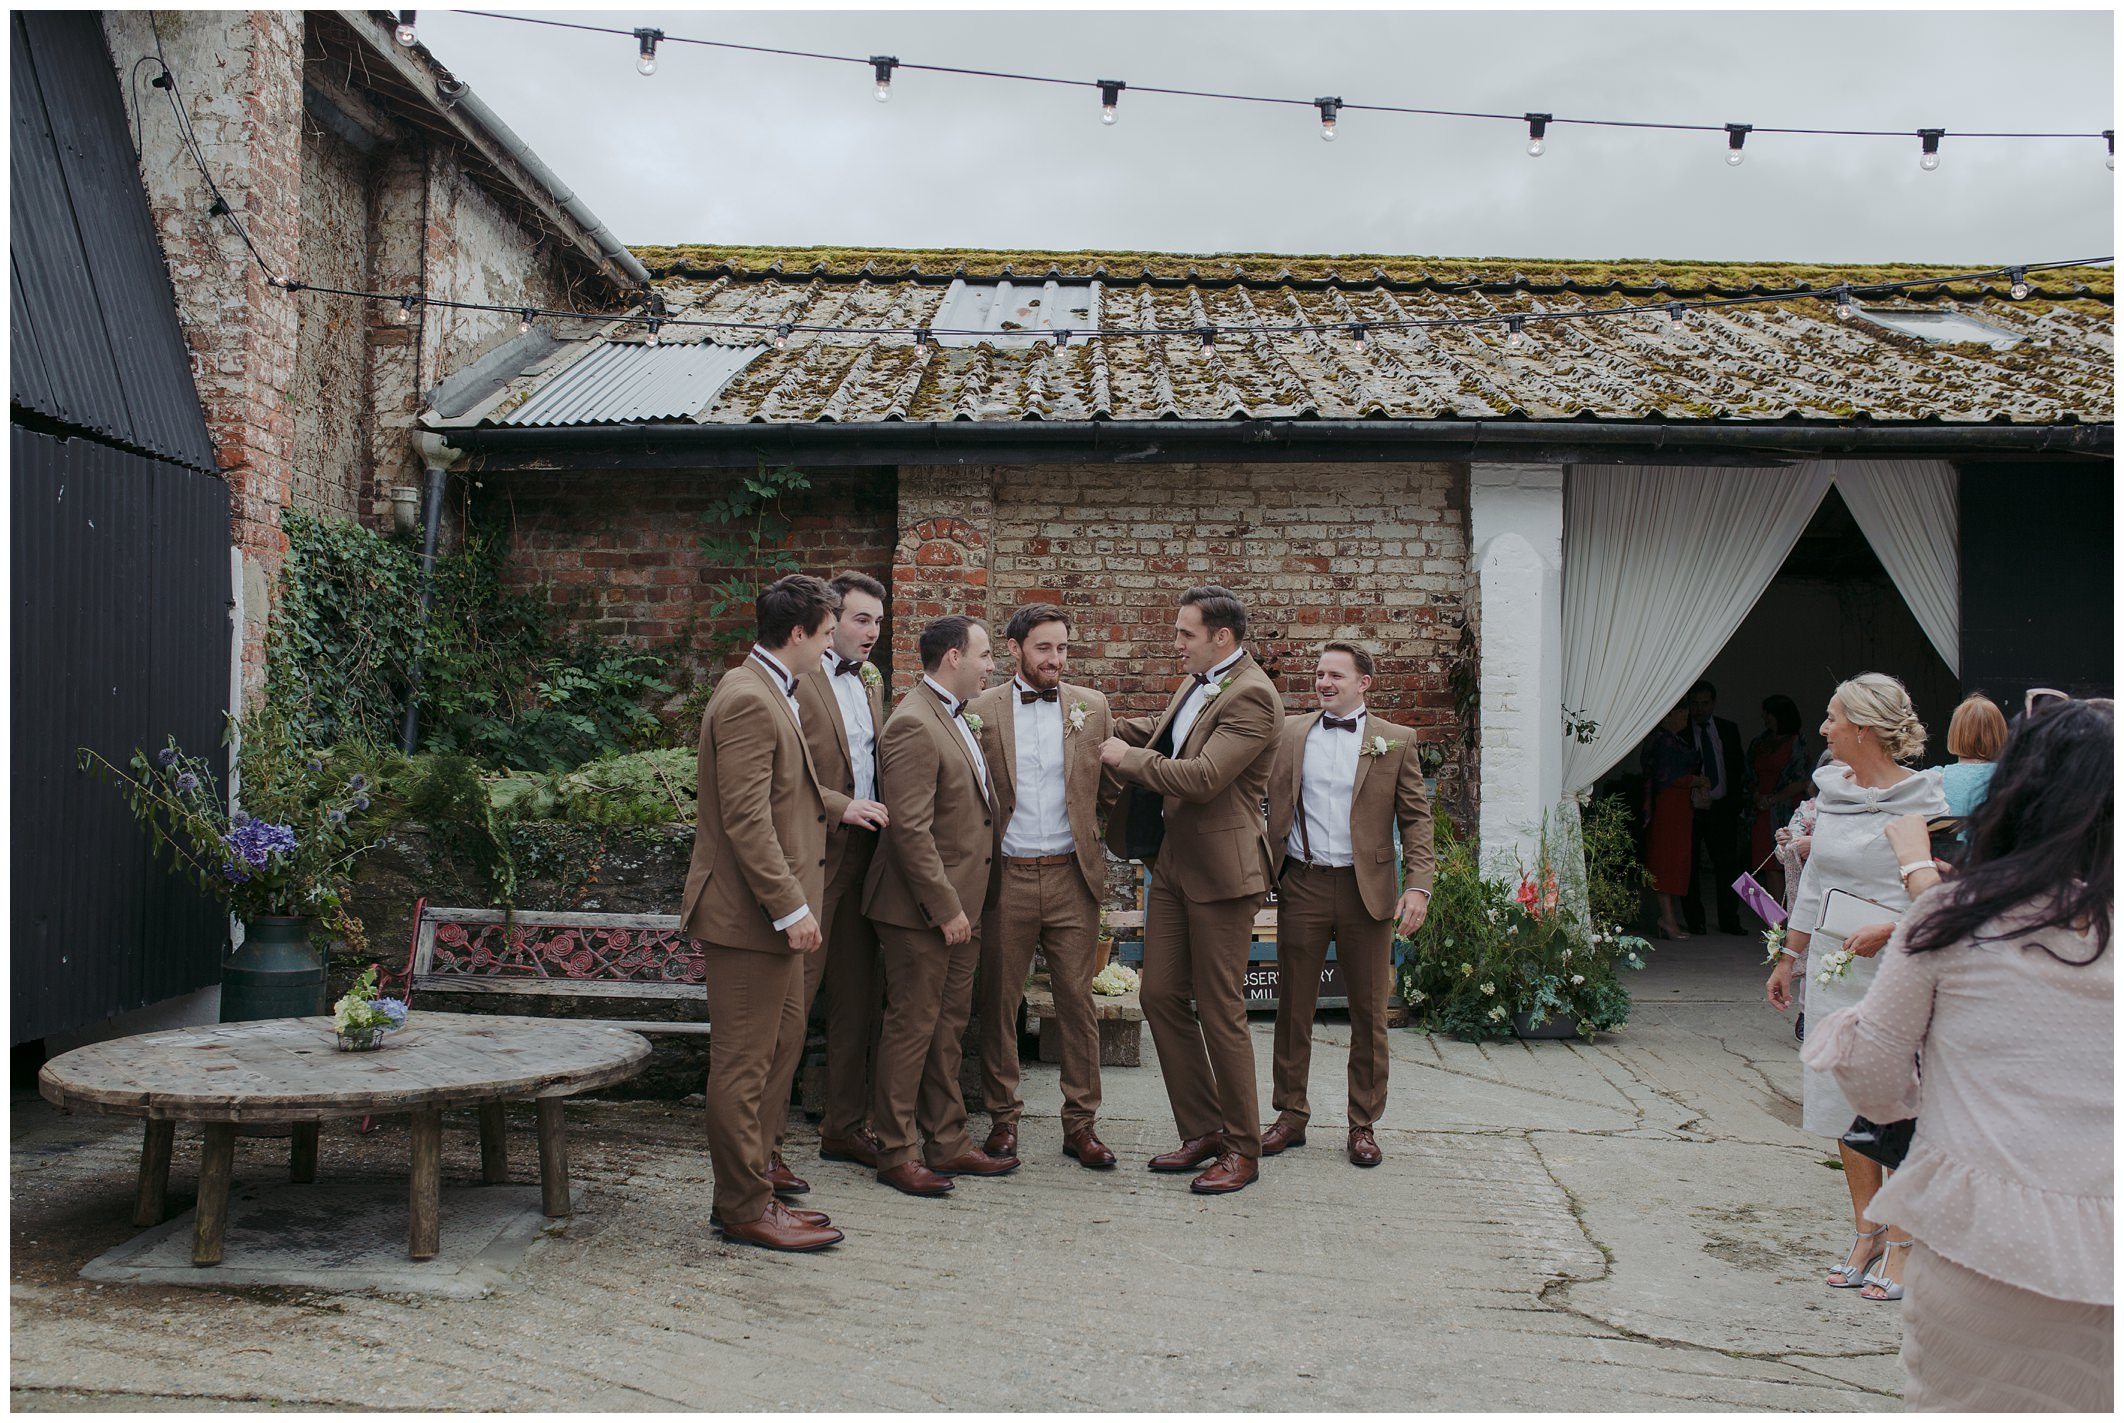 tara_neil_the_mill_alternative_quirky_wedding_jude_browne_photography_0058.jpg